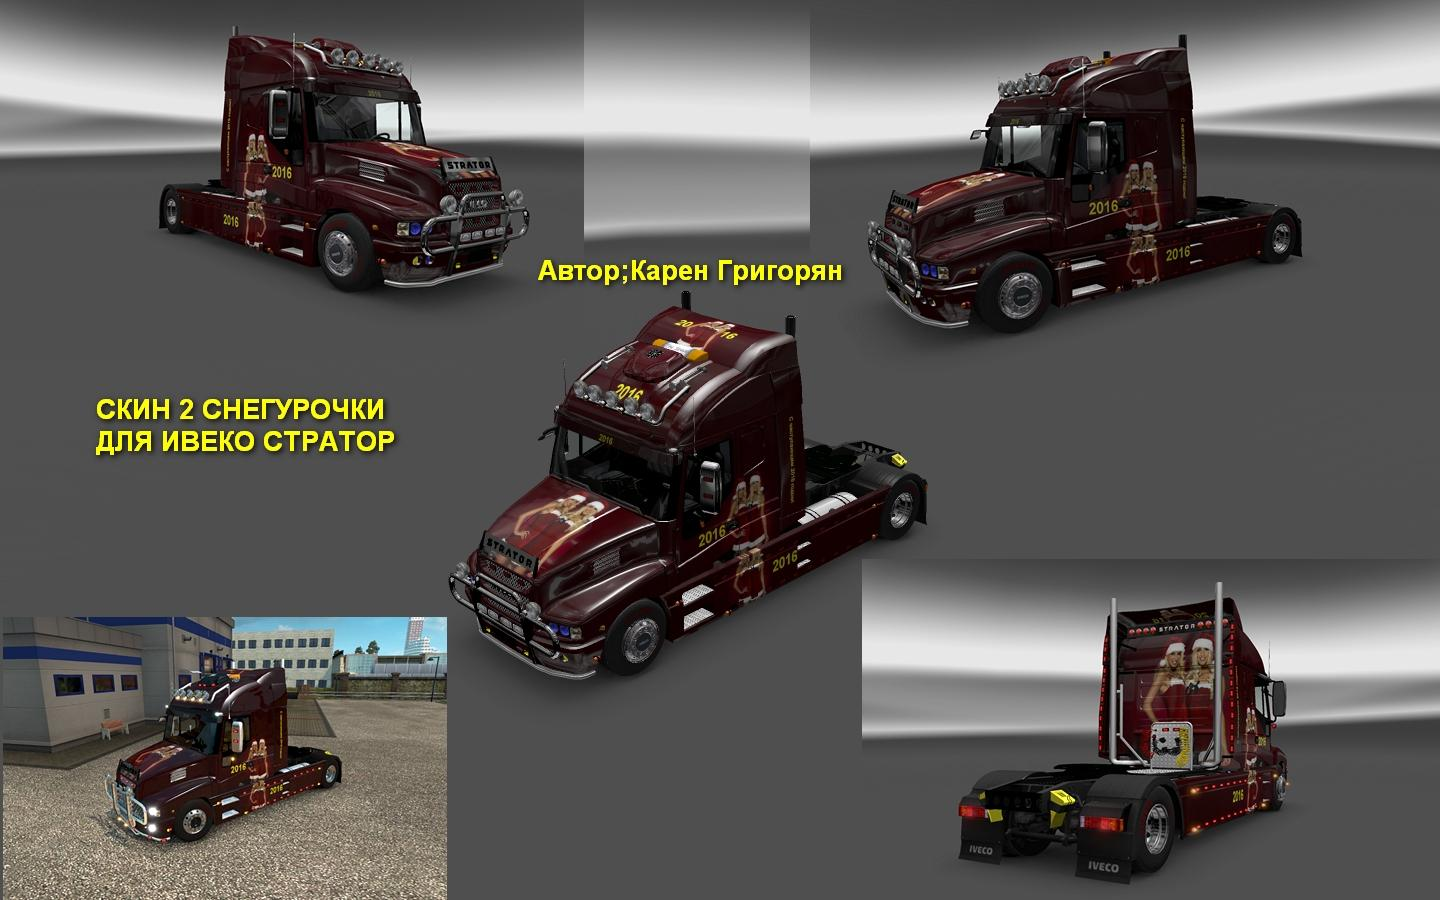 iveco-strator-new-year-skin-1-22_1